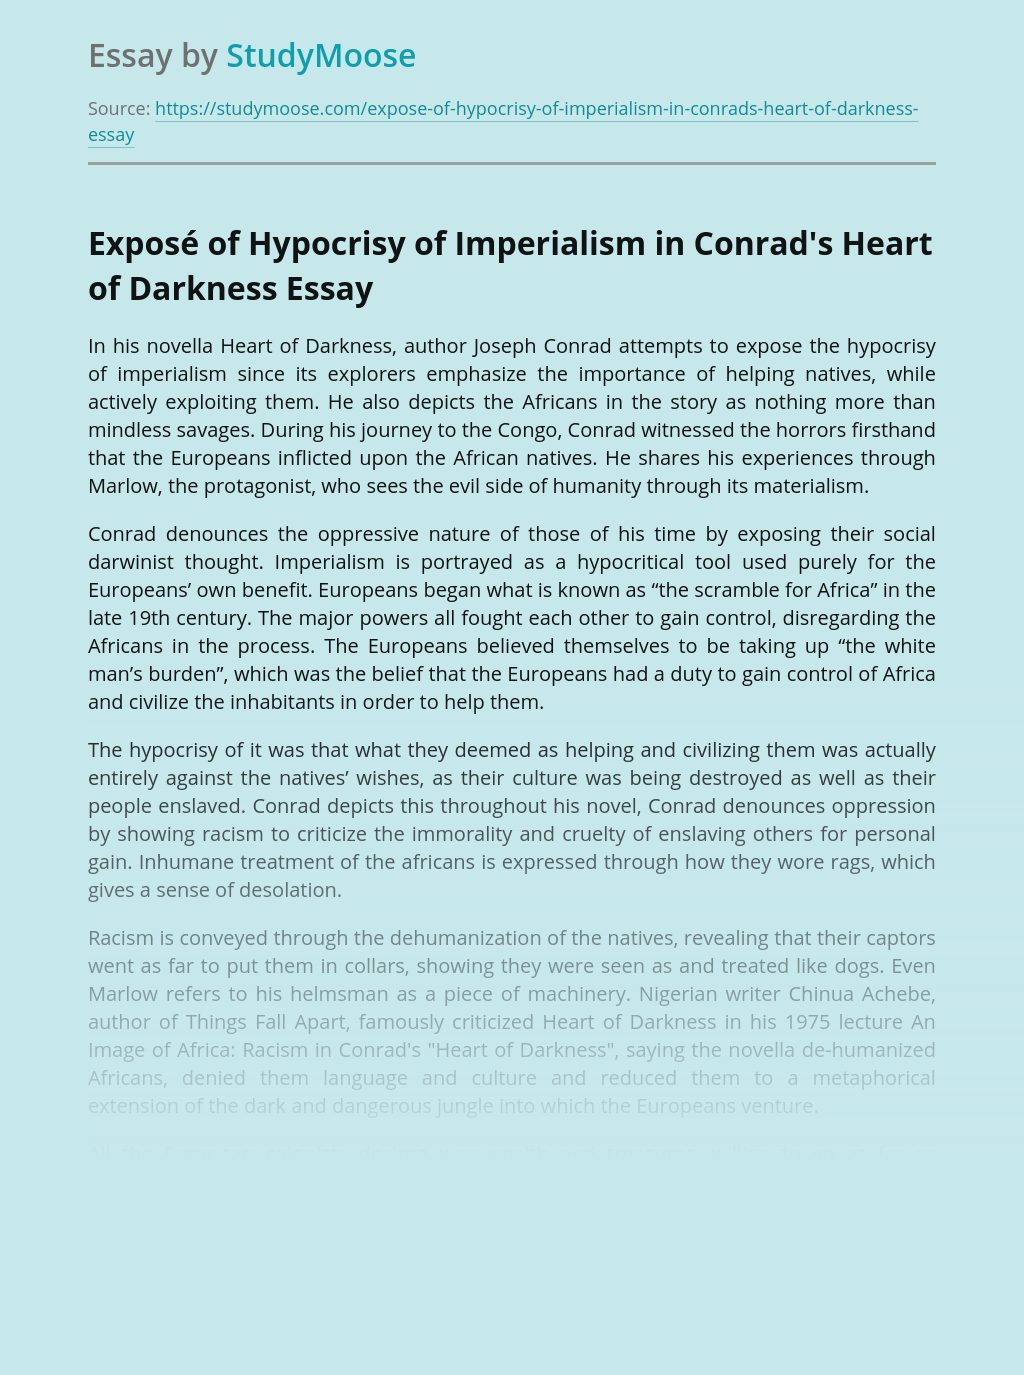 Exposé of Hypocrisy of Imperialism in Conrad's Heart of Darkness